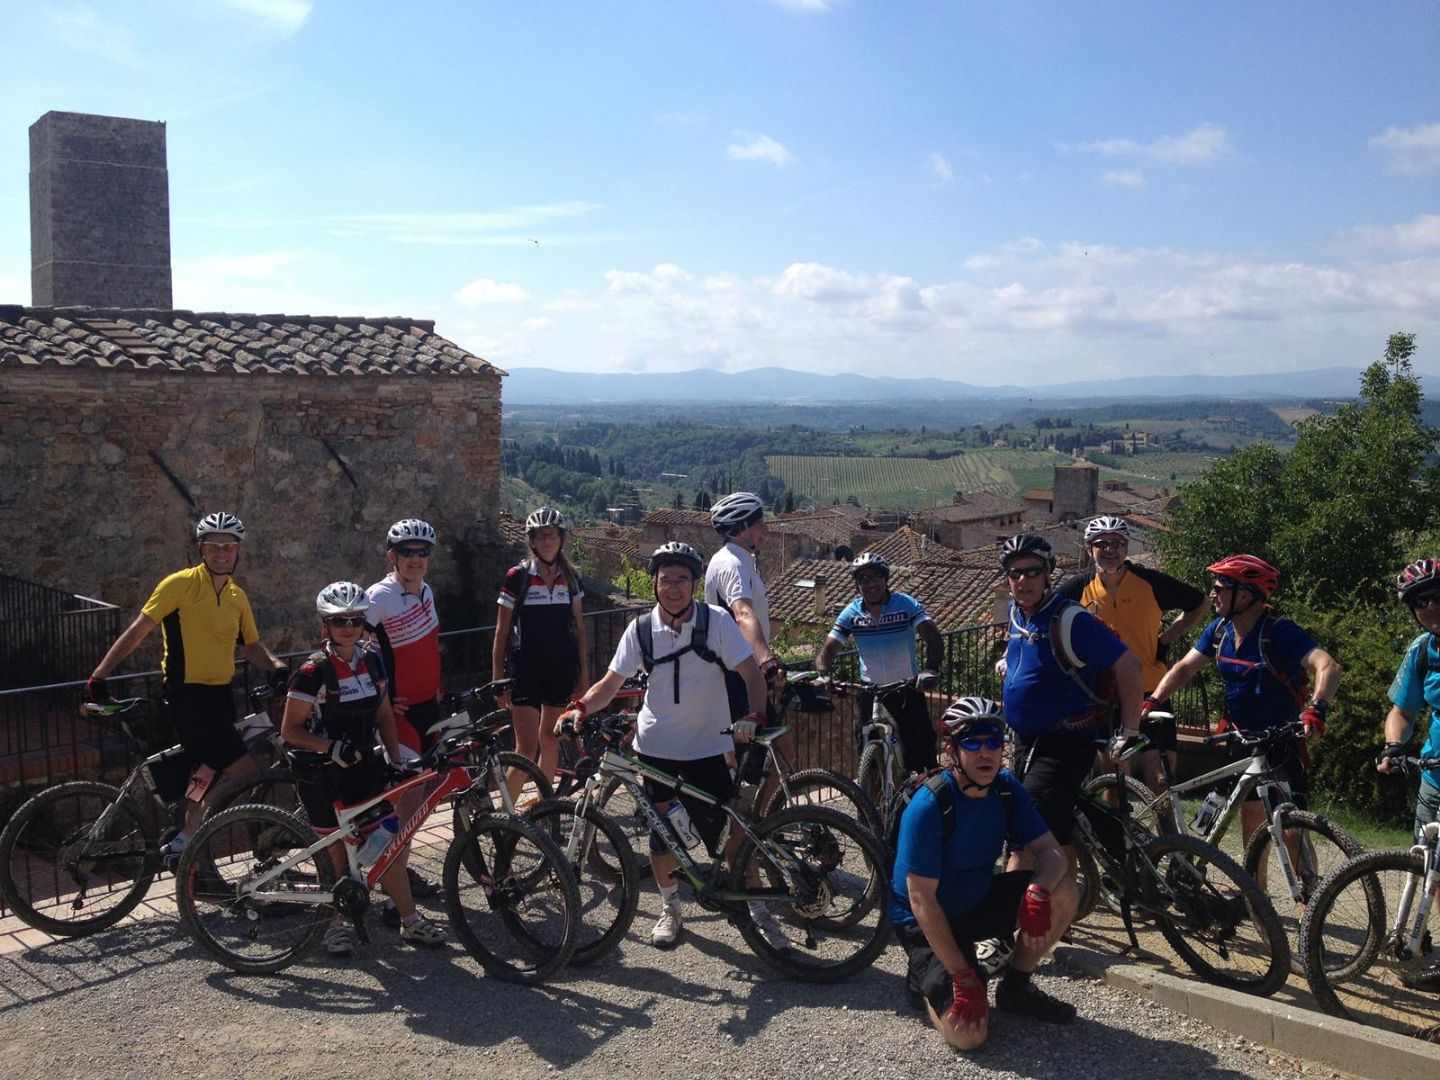 IMG_1639.JPG - Italy - Tuscany - Sacred Routes - Guided Mountain Bike Holiday - Mountain Biking